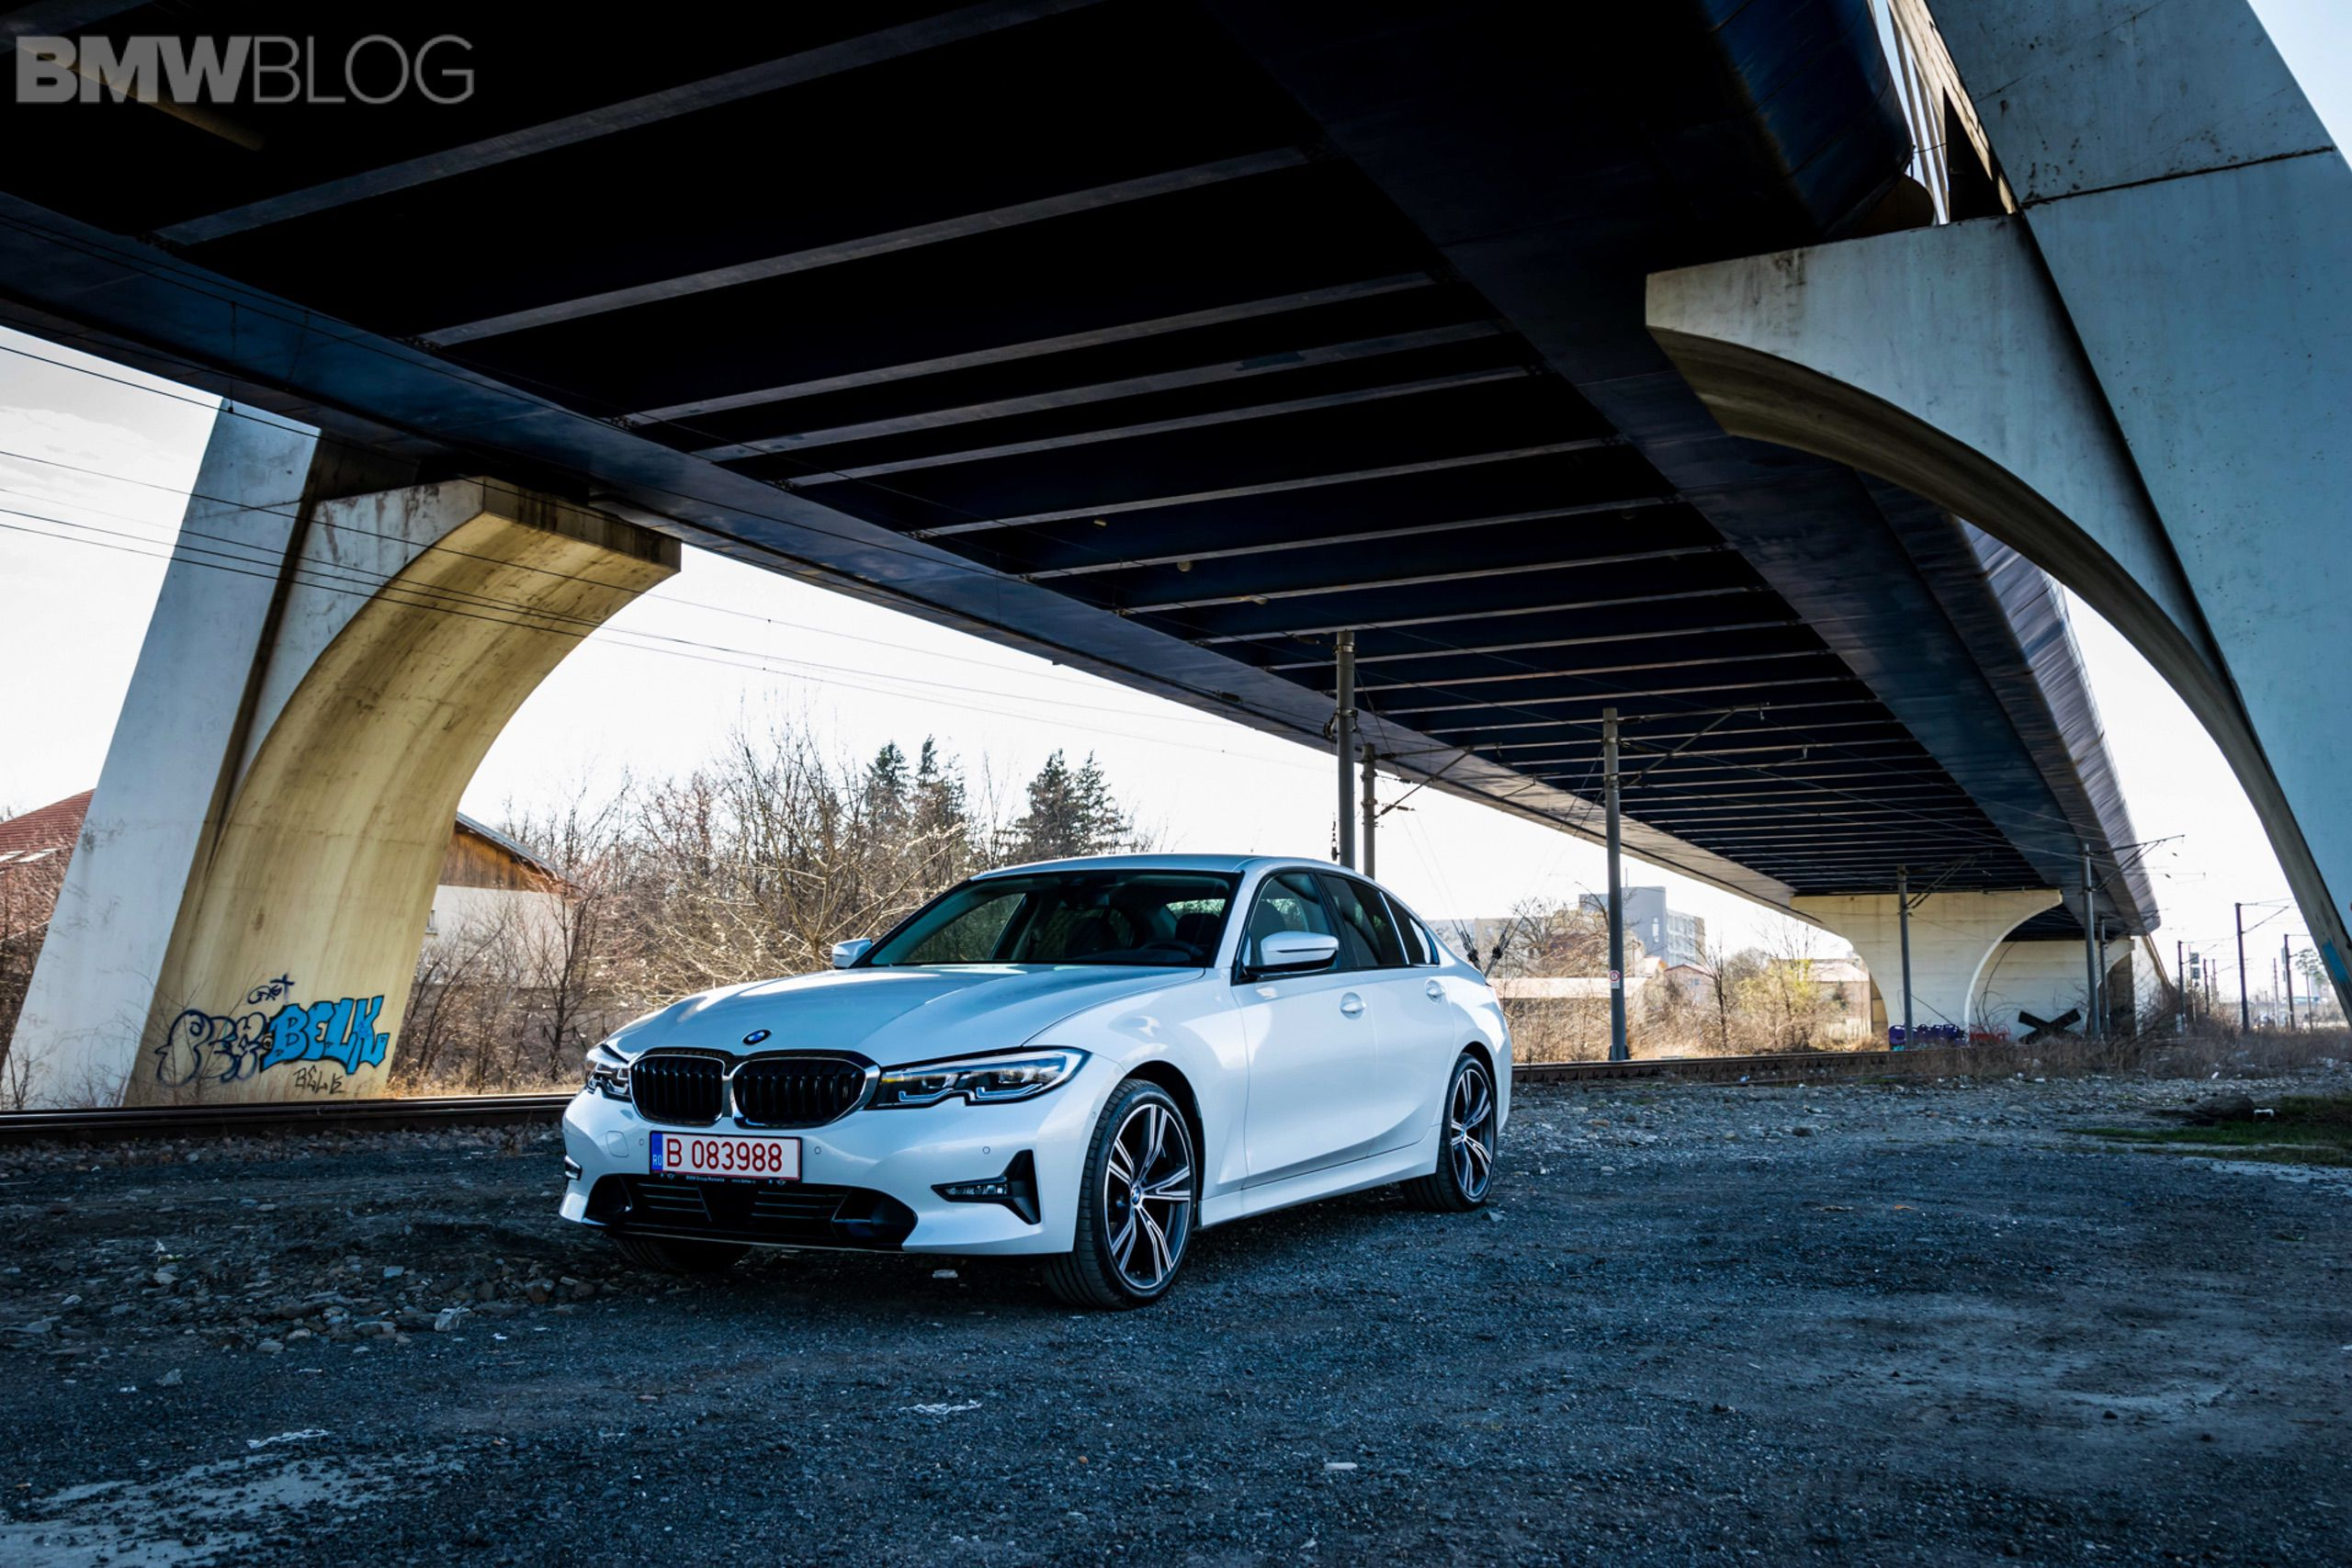 TEST DRIVE: 2019 BMW G20 320d – Still a Best-Seller?